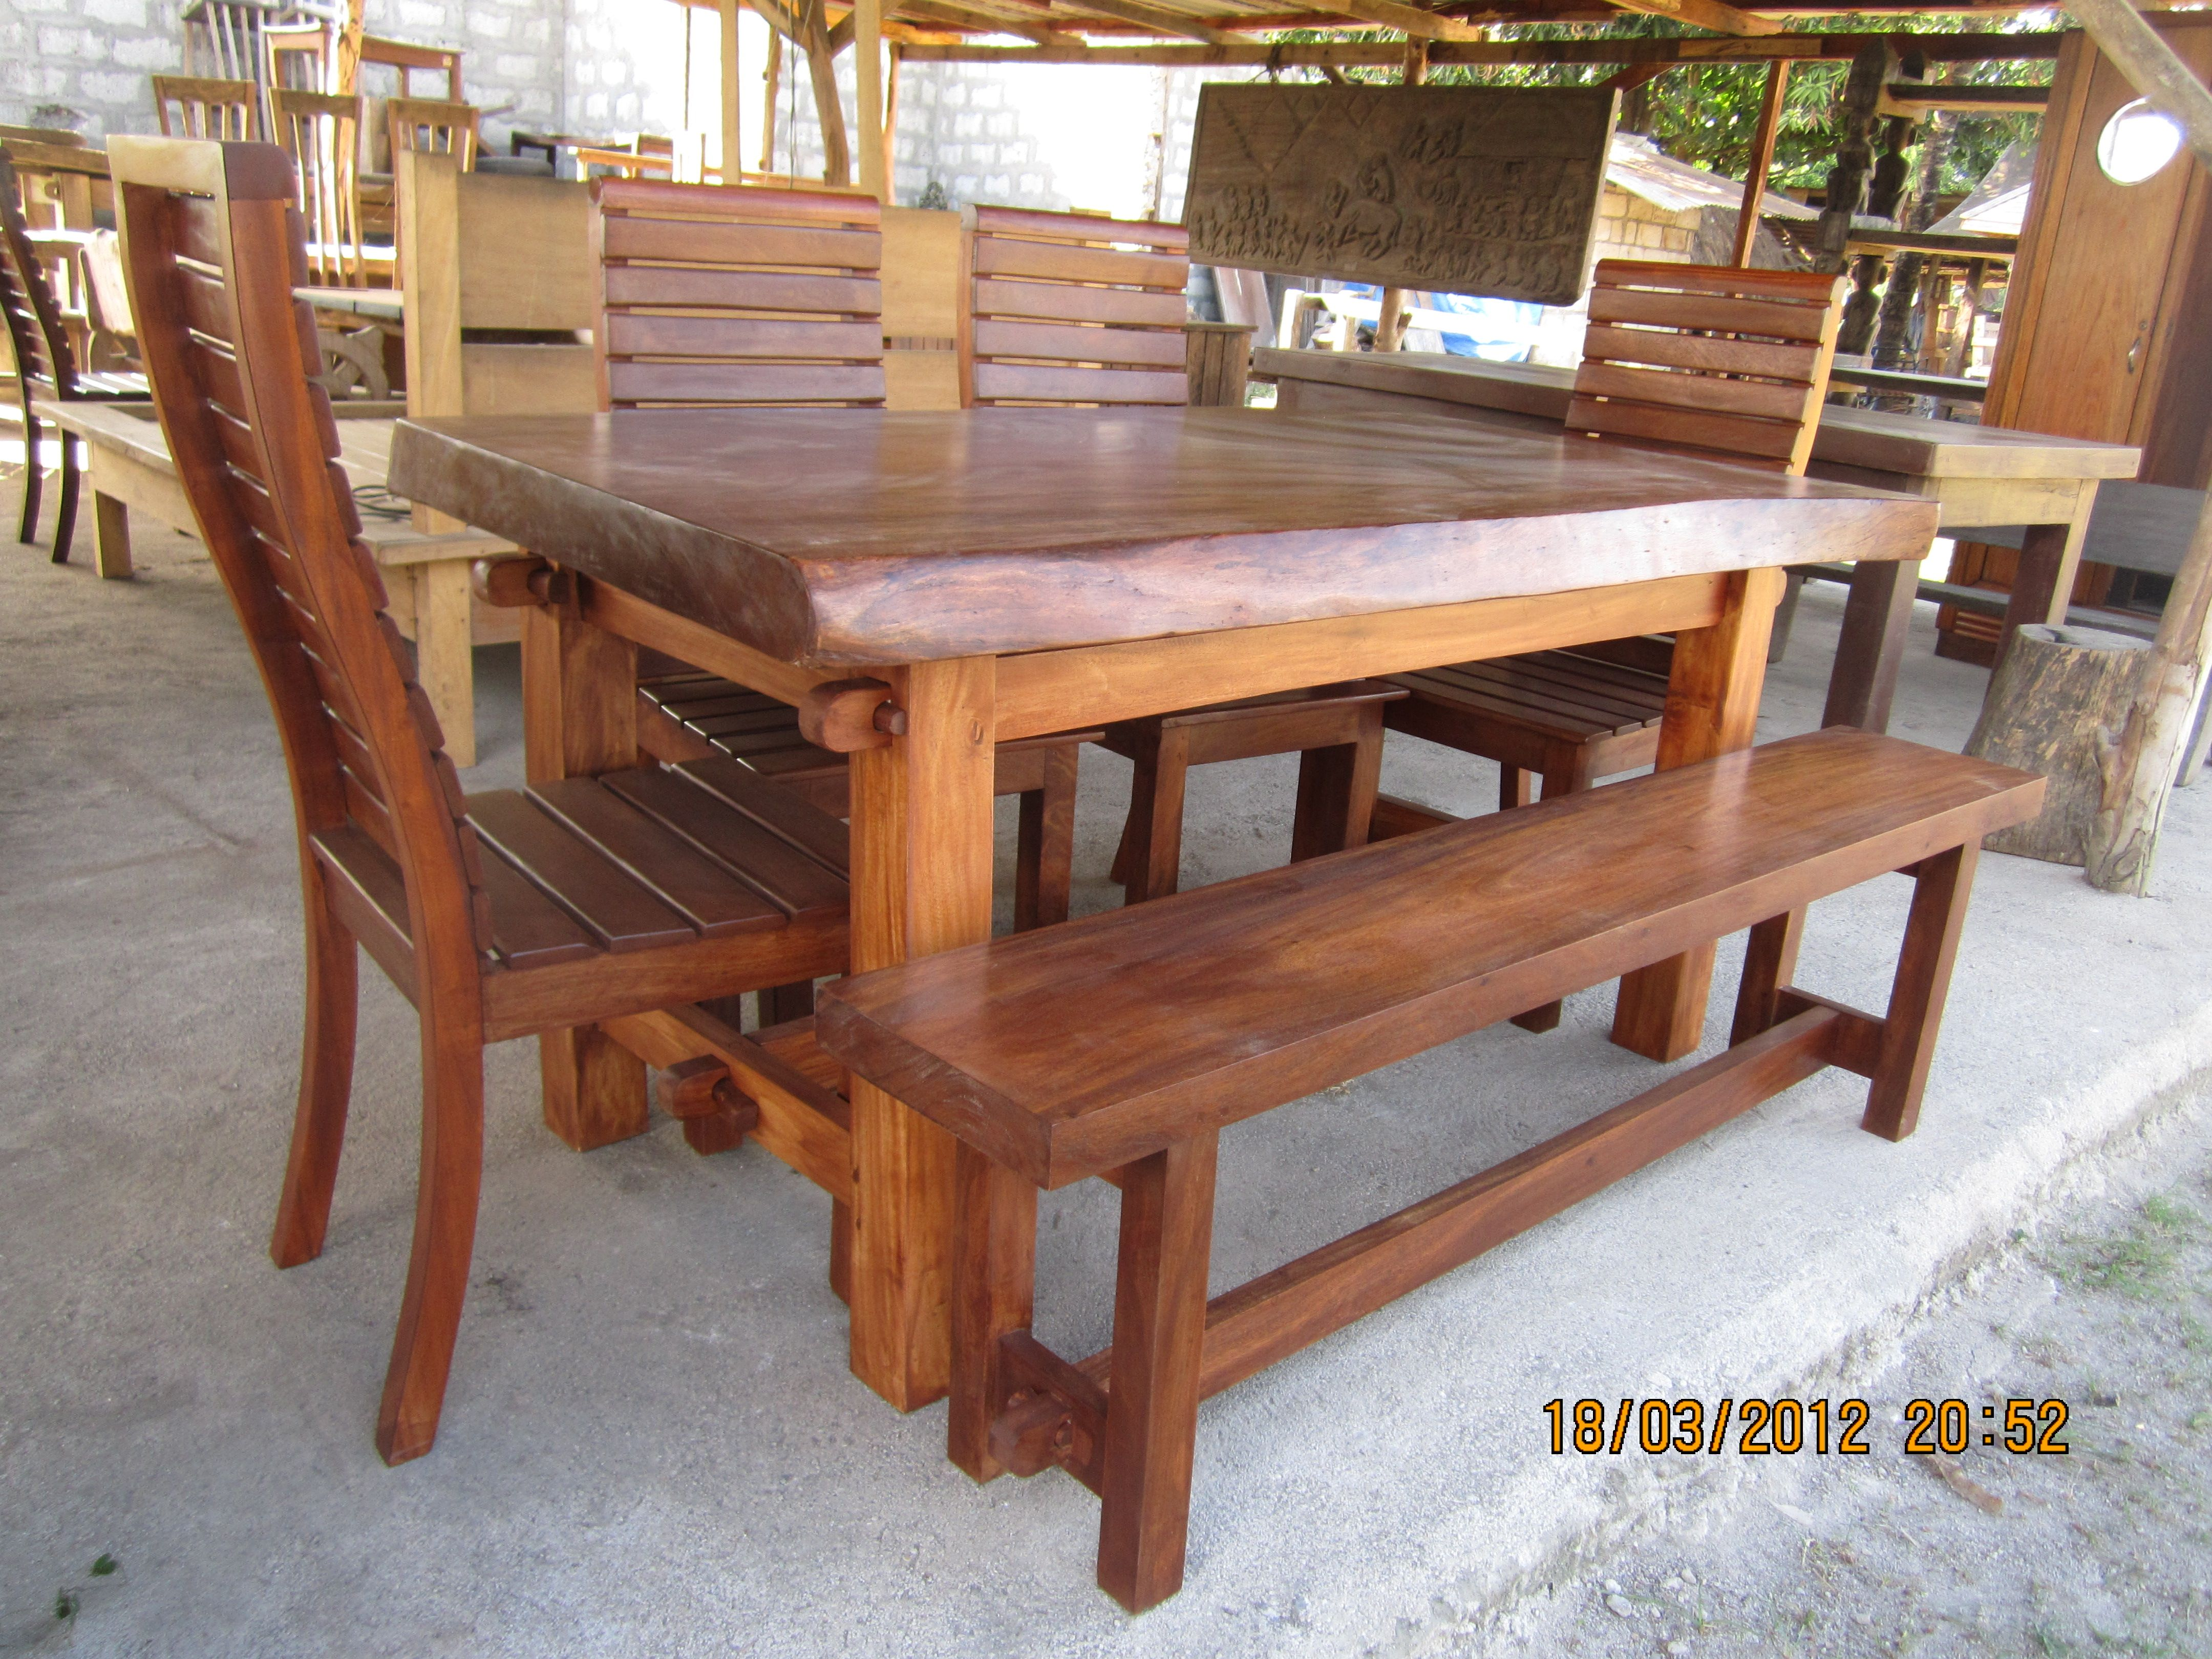 6 Sitters Dinning Set Acacia Wood 25 000 Wood Dining Table Wood Dining Room Chairs 10 Seater Dining Table